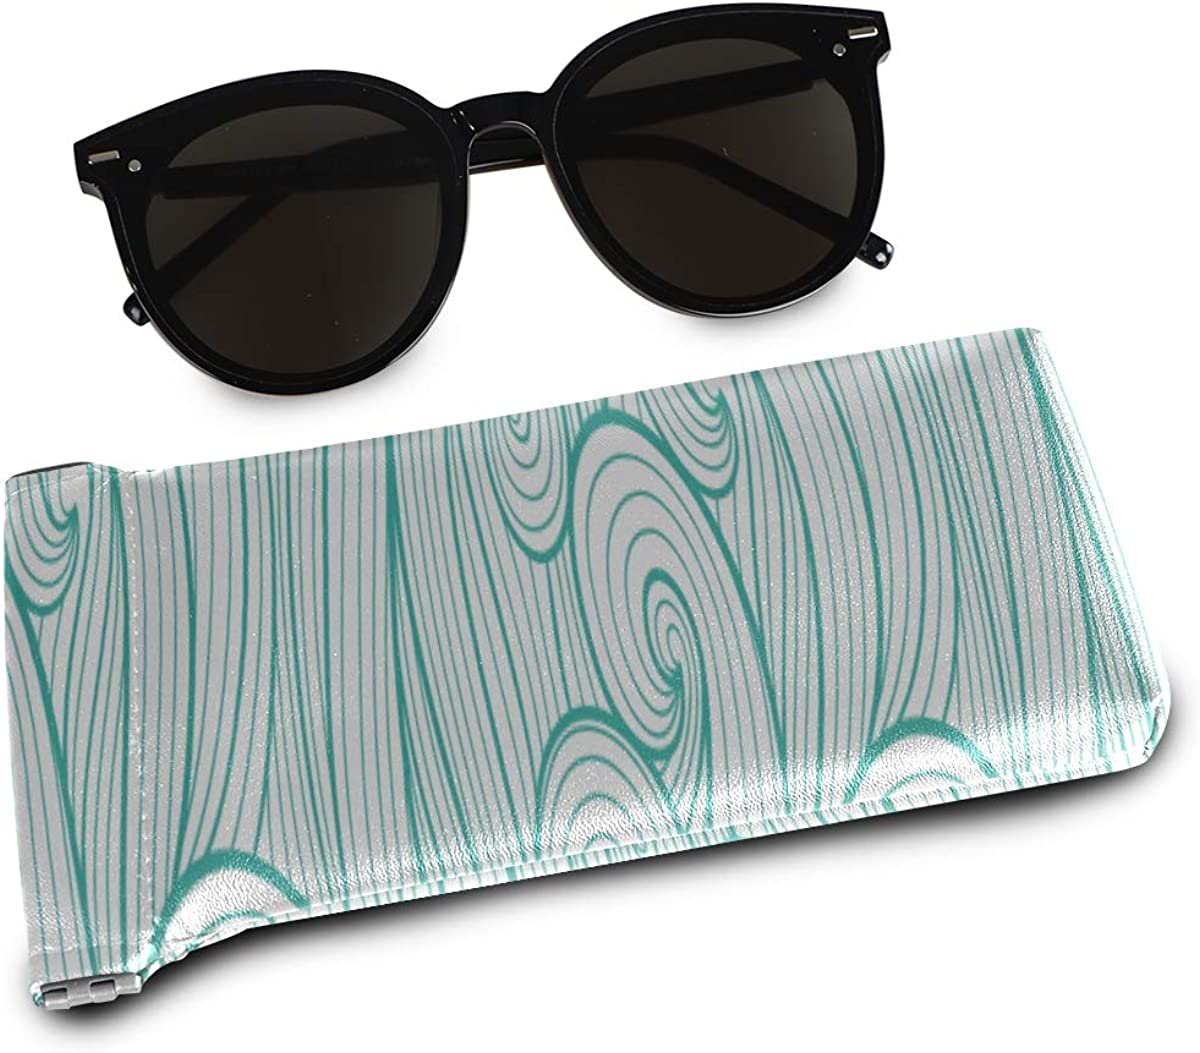 Squeeze Top Fashion Glasses Case Abstract Colorful Curly Lines Patterns Portable Glass Case For Eyeglasses Eyeglass Cases Sunglasses Pouch Eyeglass B